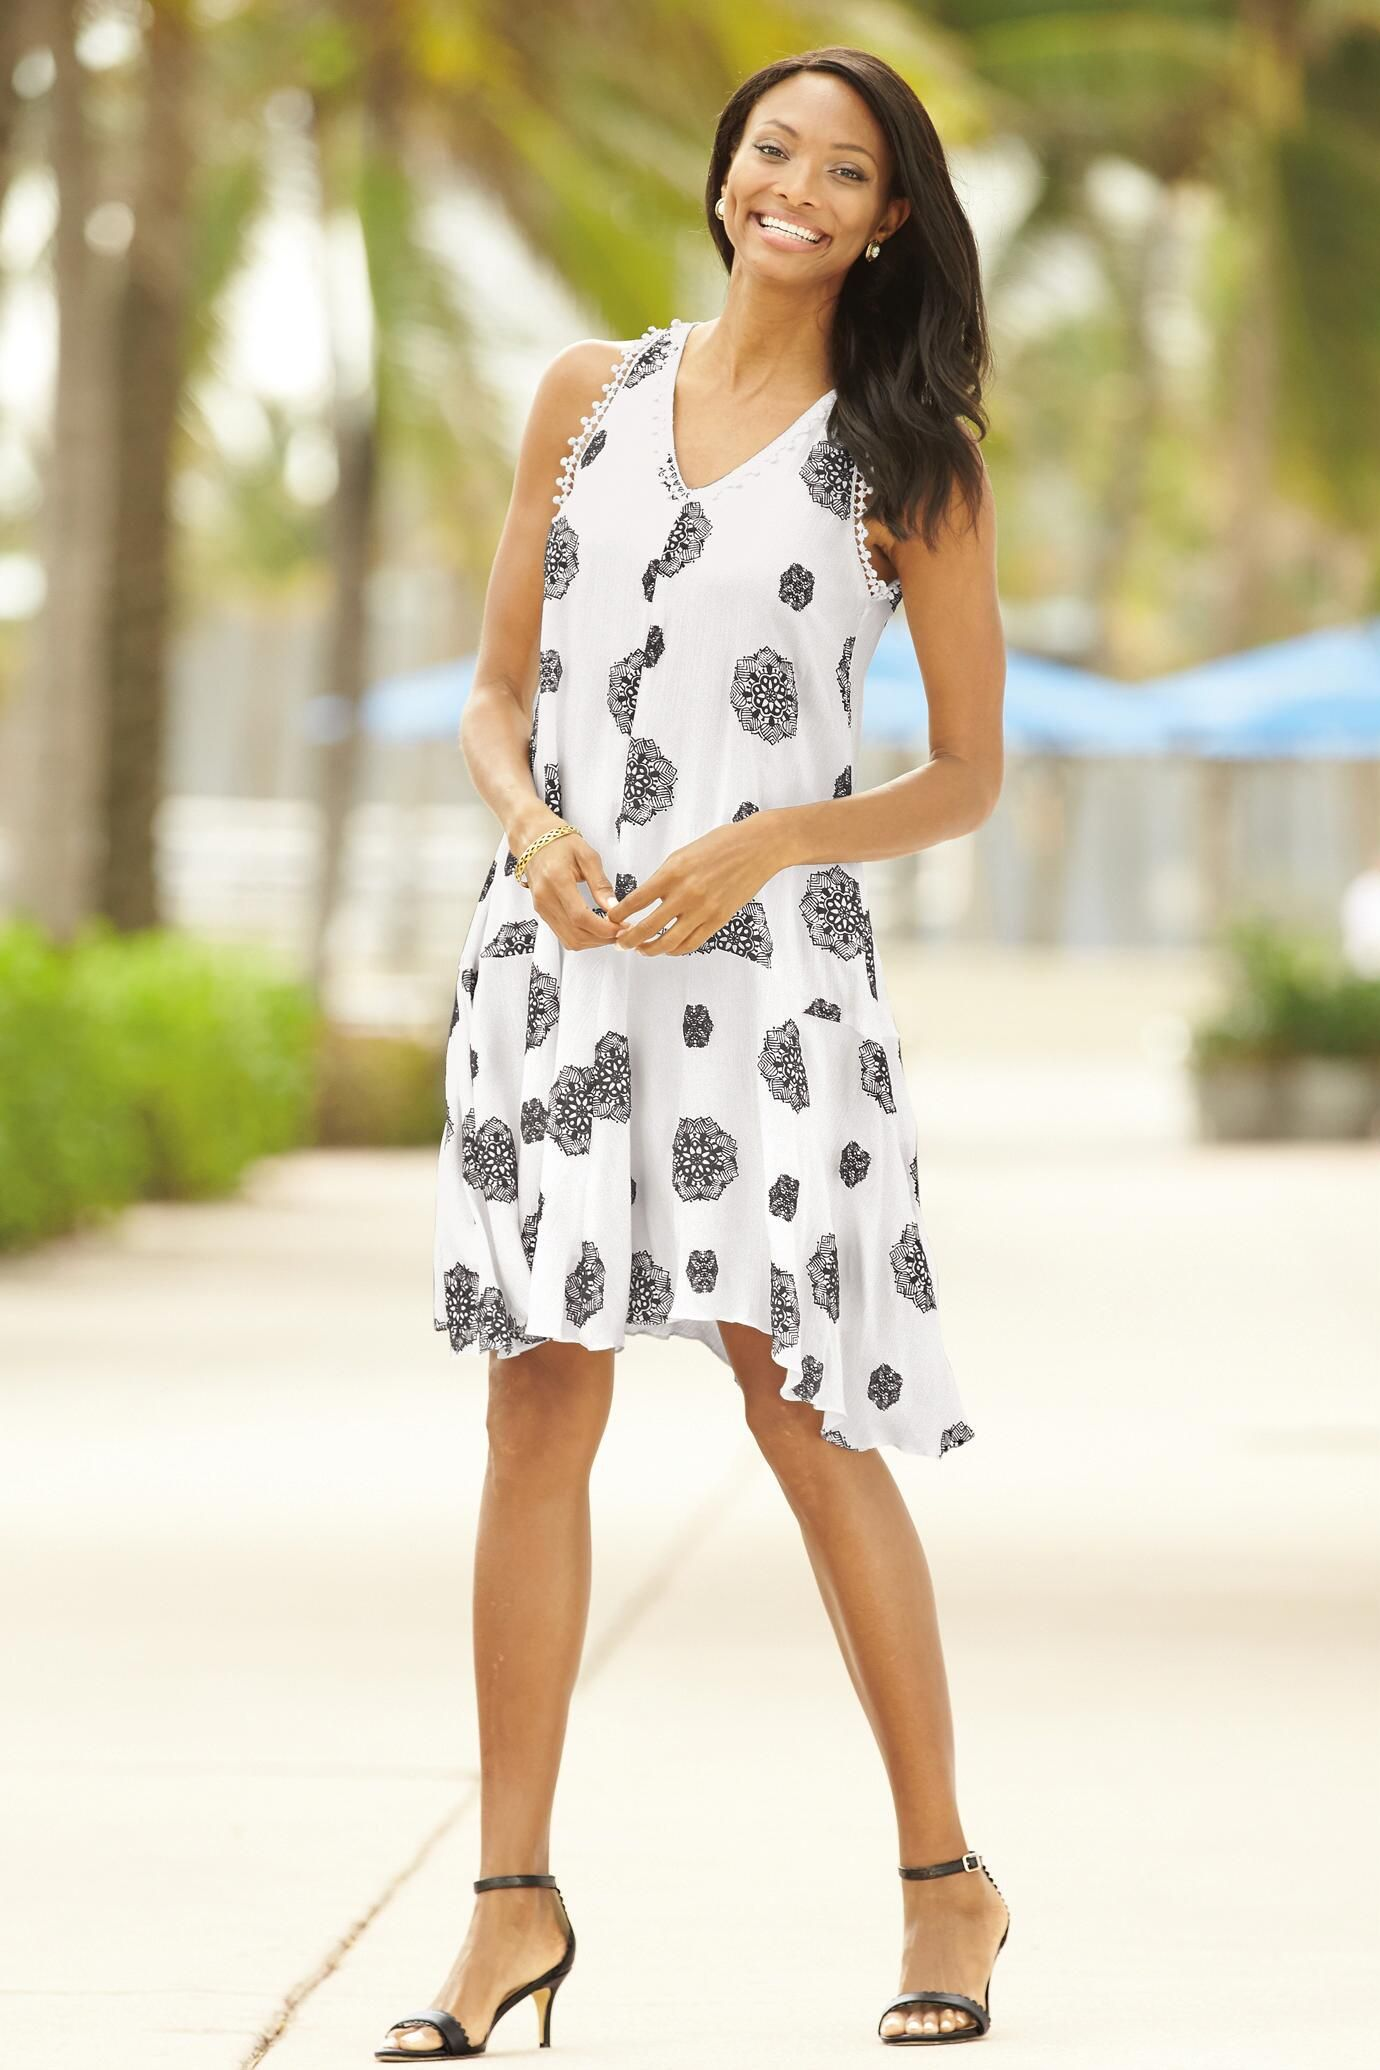 Sleeveless Medallion Puff Print Dress In Black And White Pattern That S Beautiful For Summer Dress Up In A Knee Length Flow Dresses Print Dress Classic Dress [ 2070 x 1380 Pixel ]